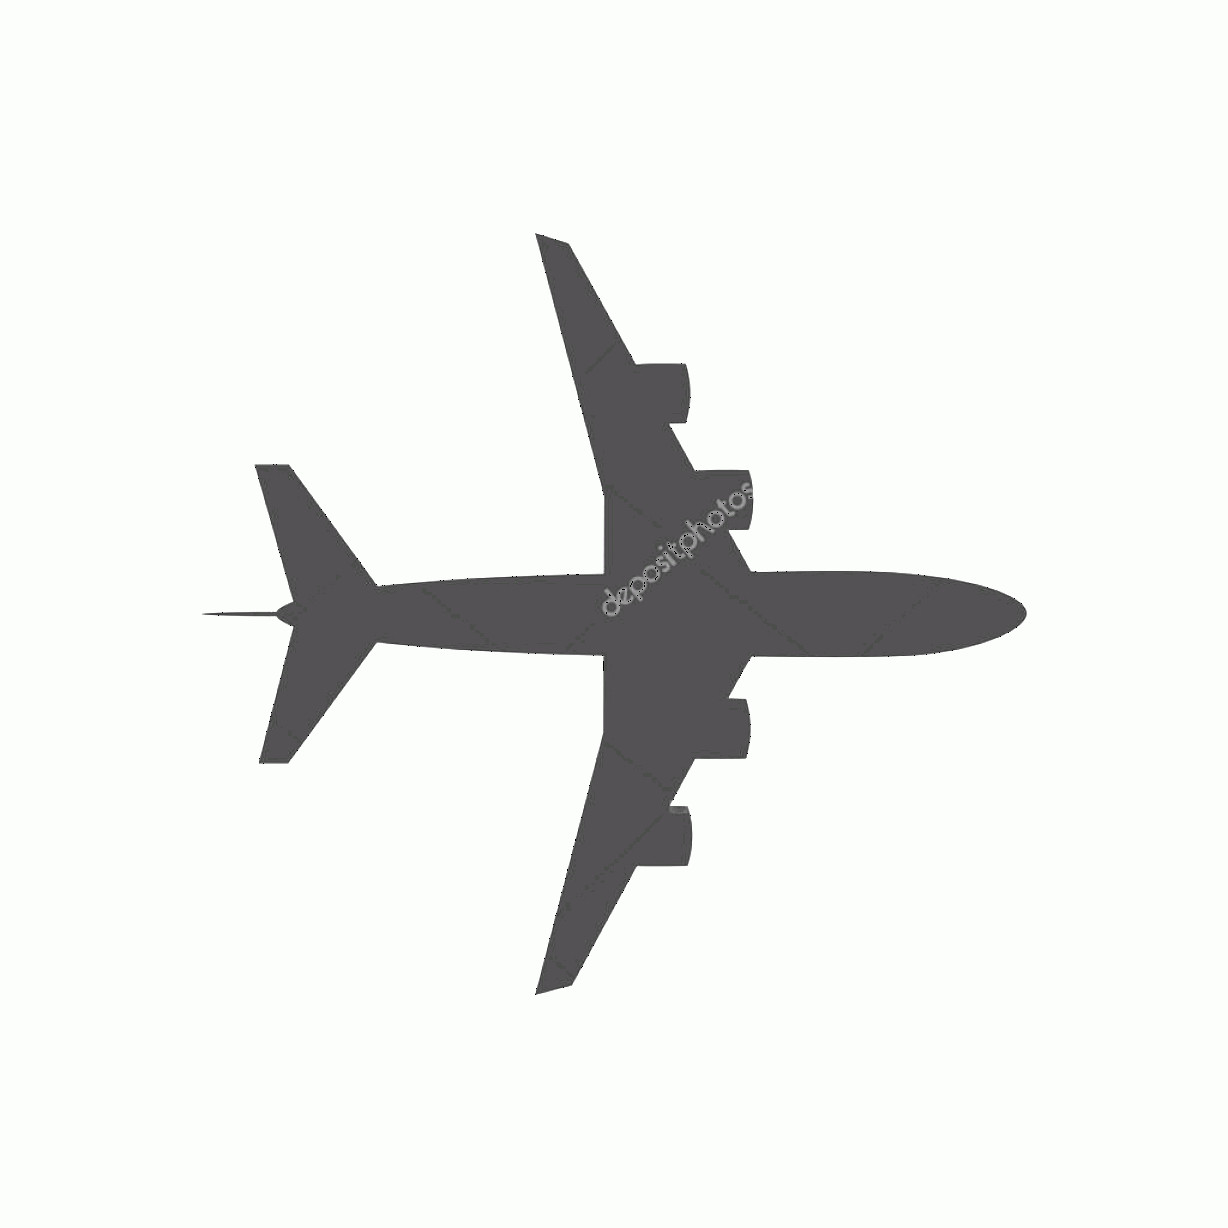 Aviation Vector Designs: Stock Illustration Airplane Silhouette Travel Icon Vector